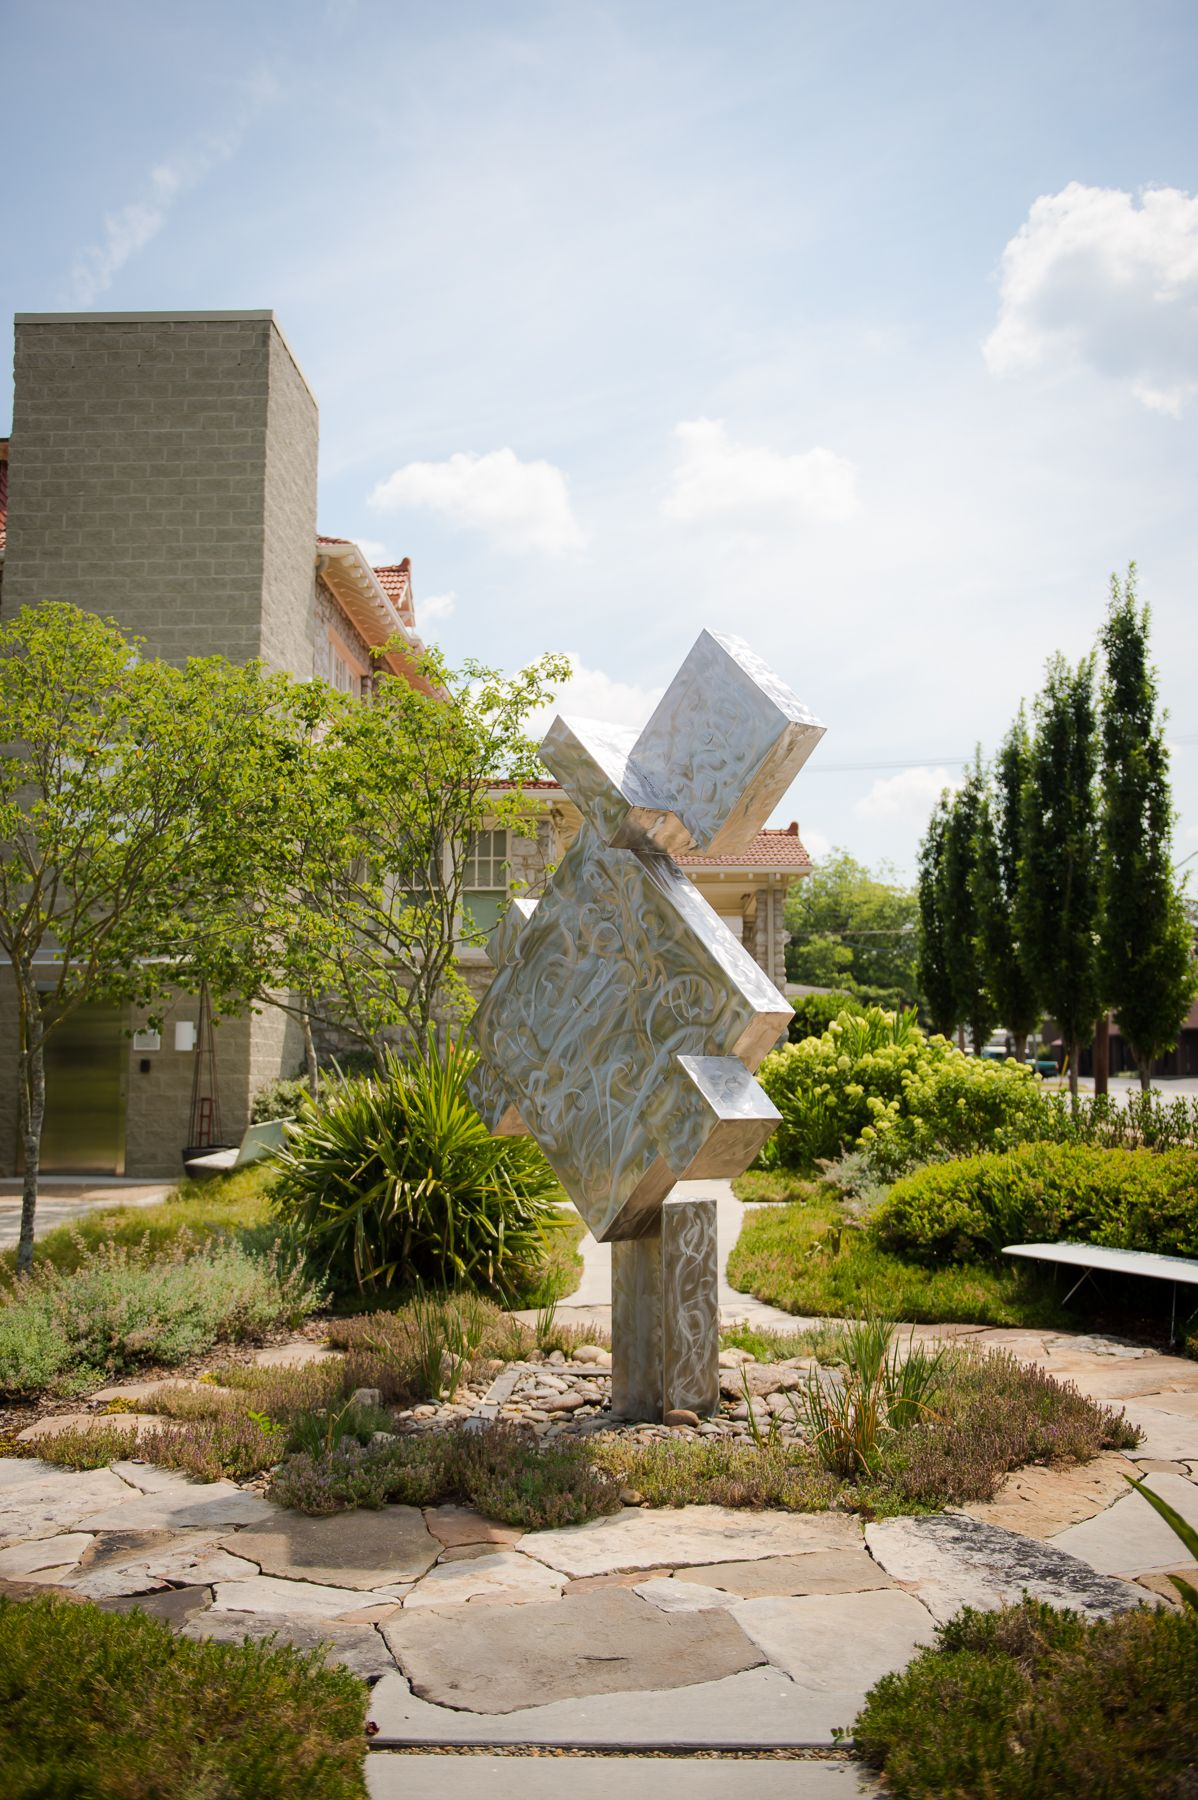 A photograph of the Jitterbug public art sculpture at The Bienenstock Furniture Library.